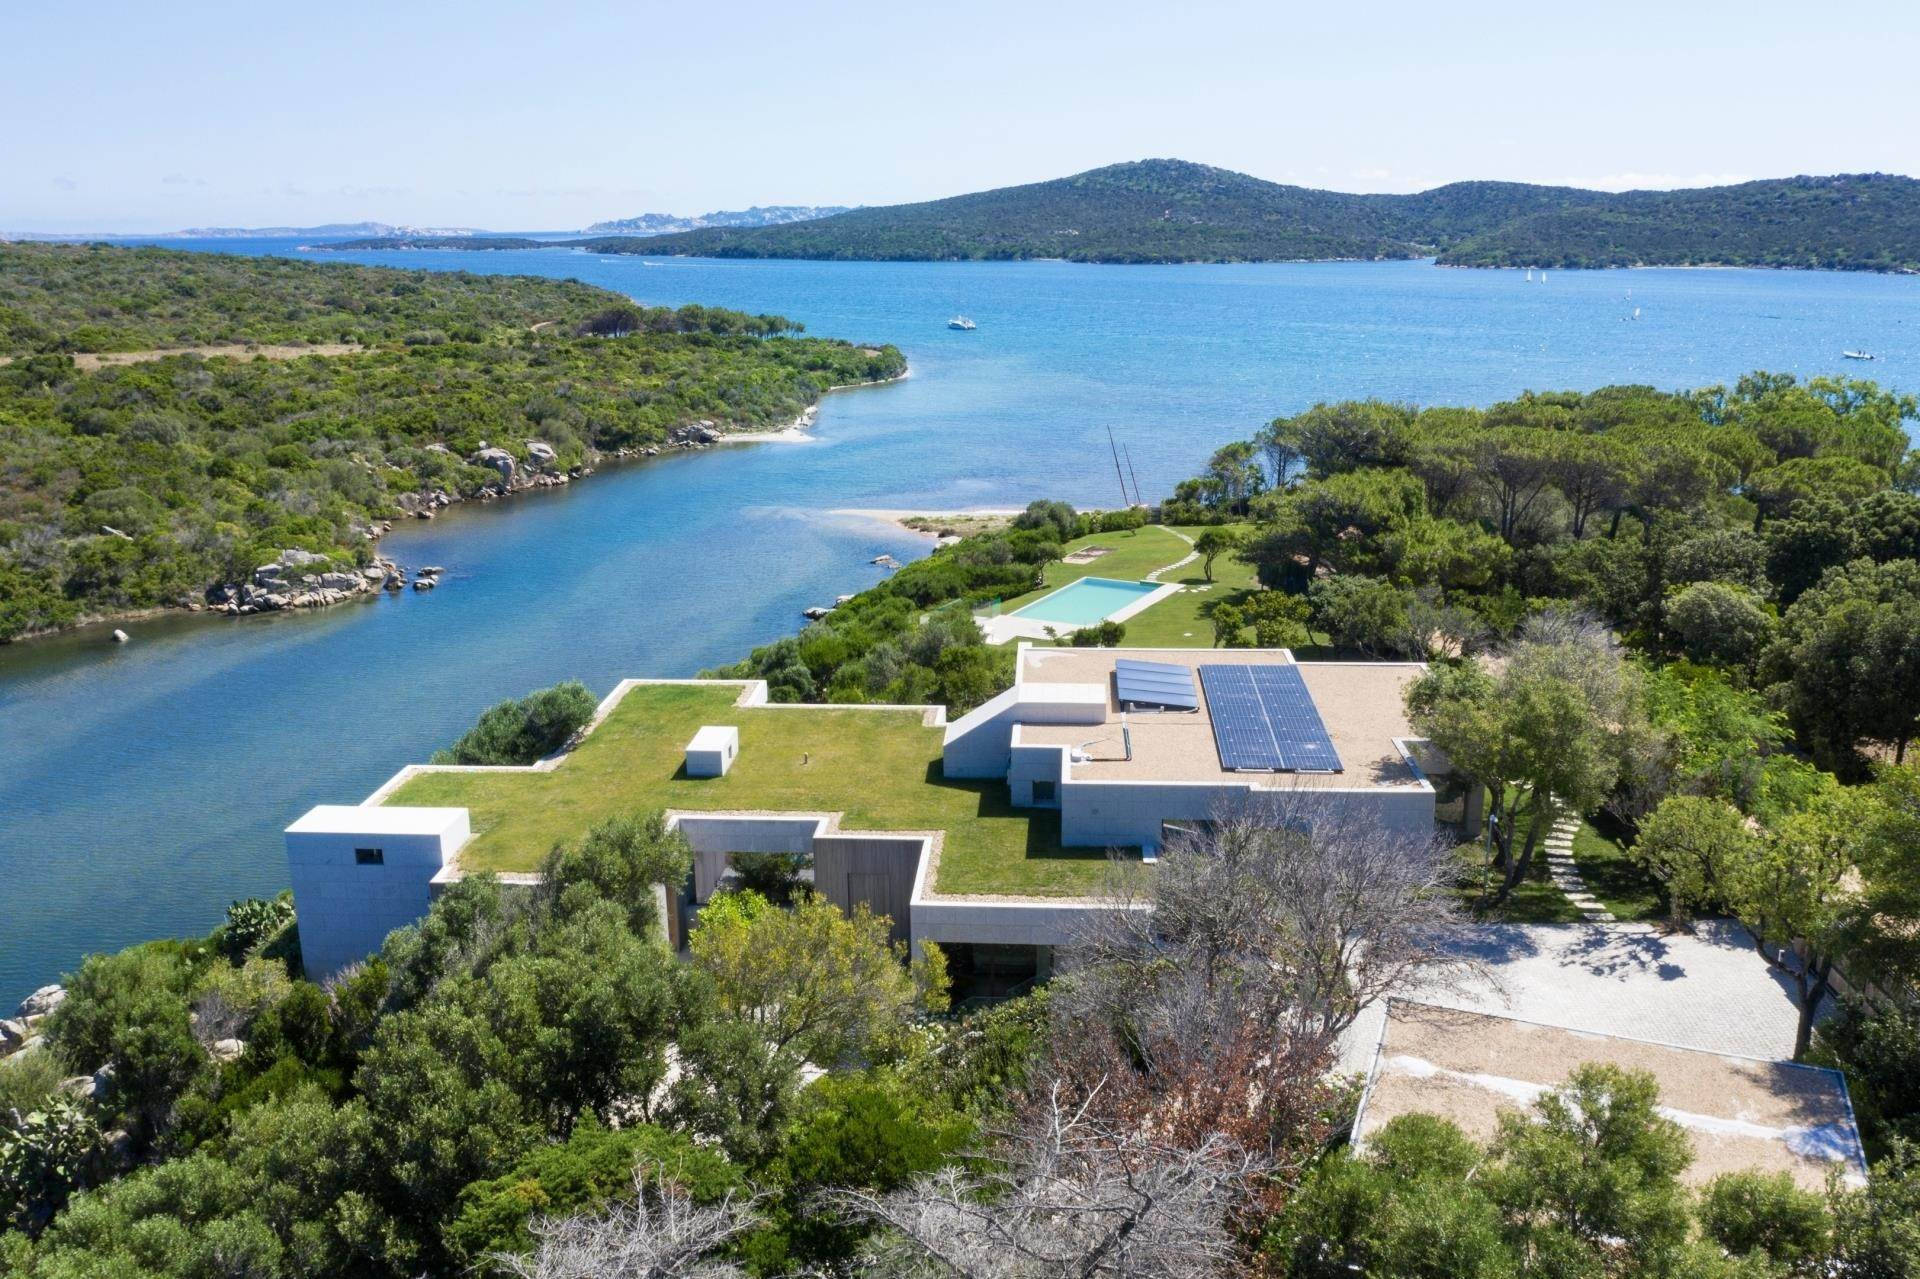 4. Villa/Townhouse for Sale at Waterfront Villa La Coluccia Costa Smeralda, Olbia Tempio,07020 Italy